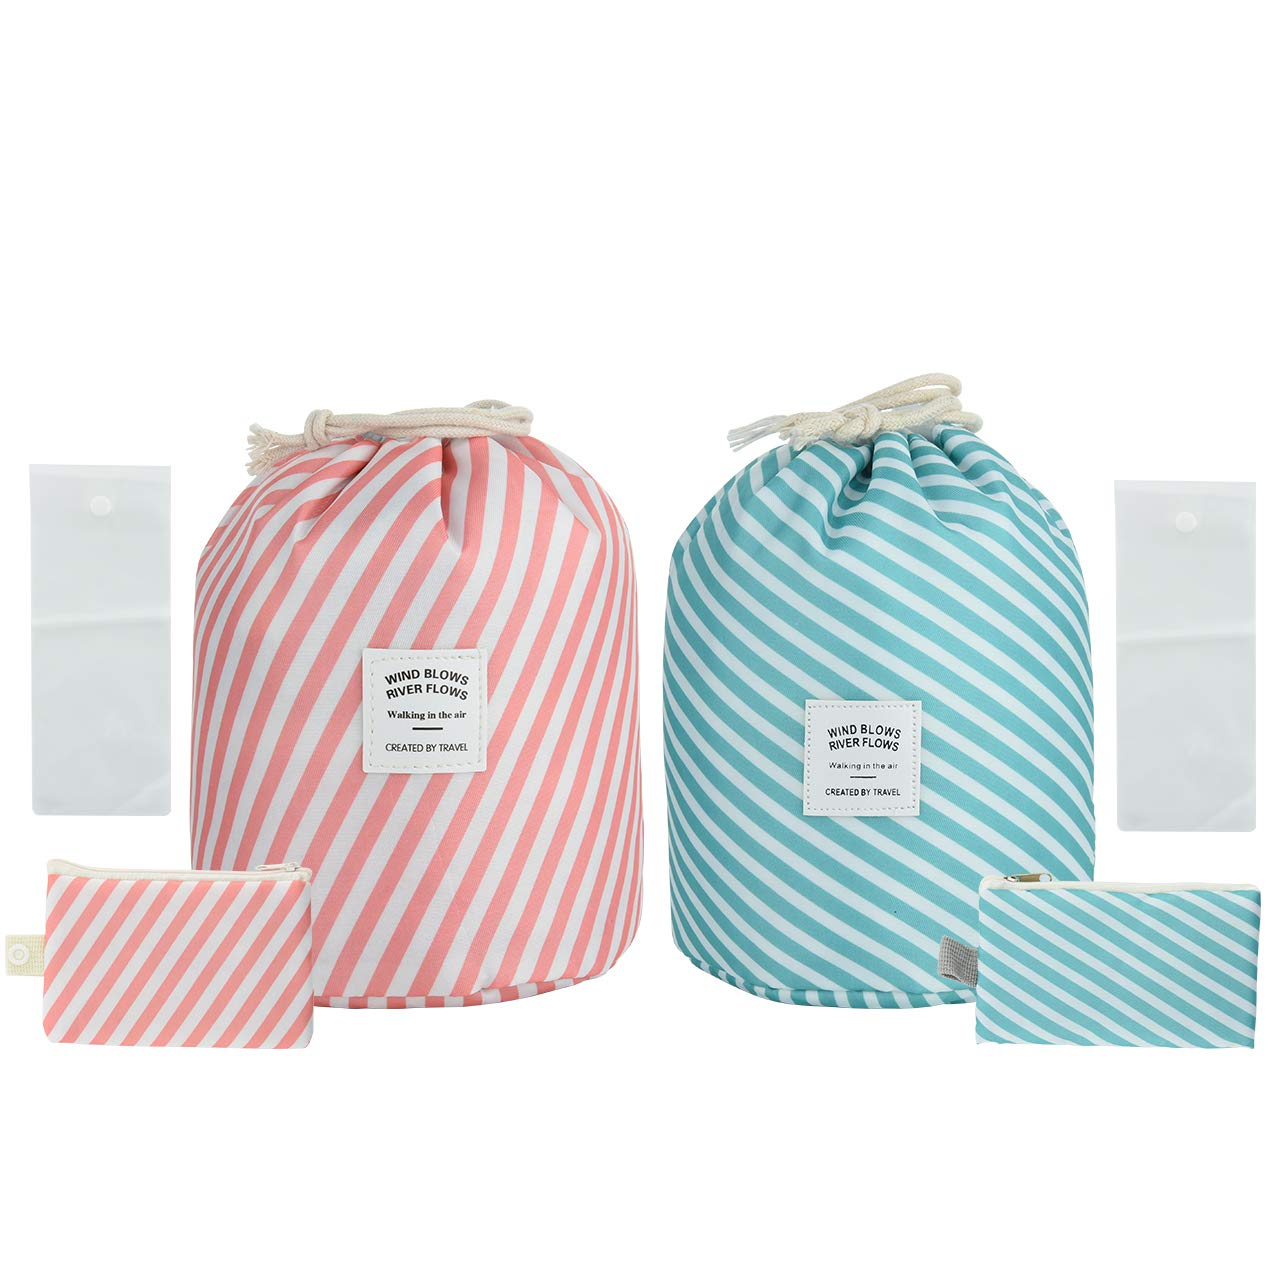 CM Pack of 2 Portable Cosmetic Round Bag Cosmetic Travel Organizer Bag Waterproof Toiletry Bag Multifunctional Bucket Makeup Bags for Bathroom Travel Outgoing Use (Stripe Patterns (Pink & Blue))